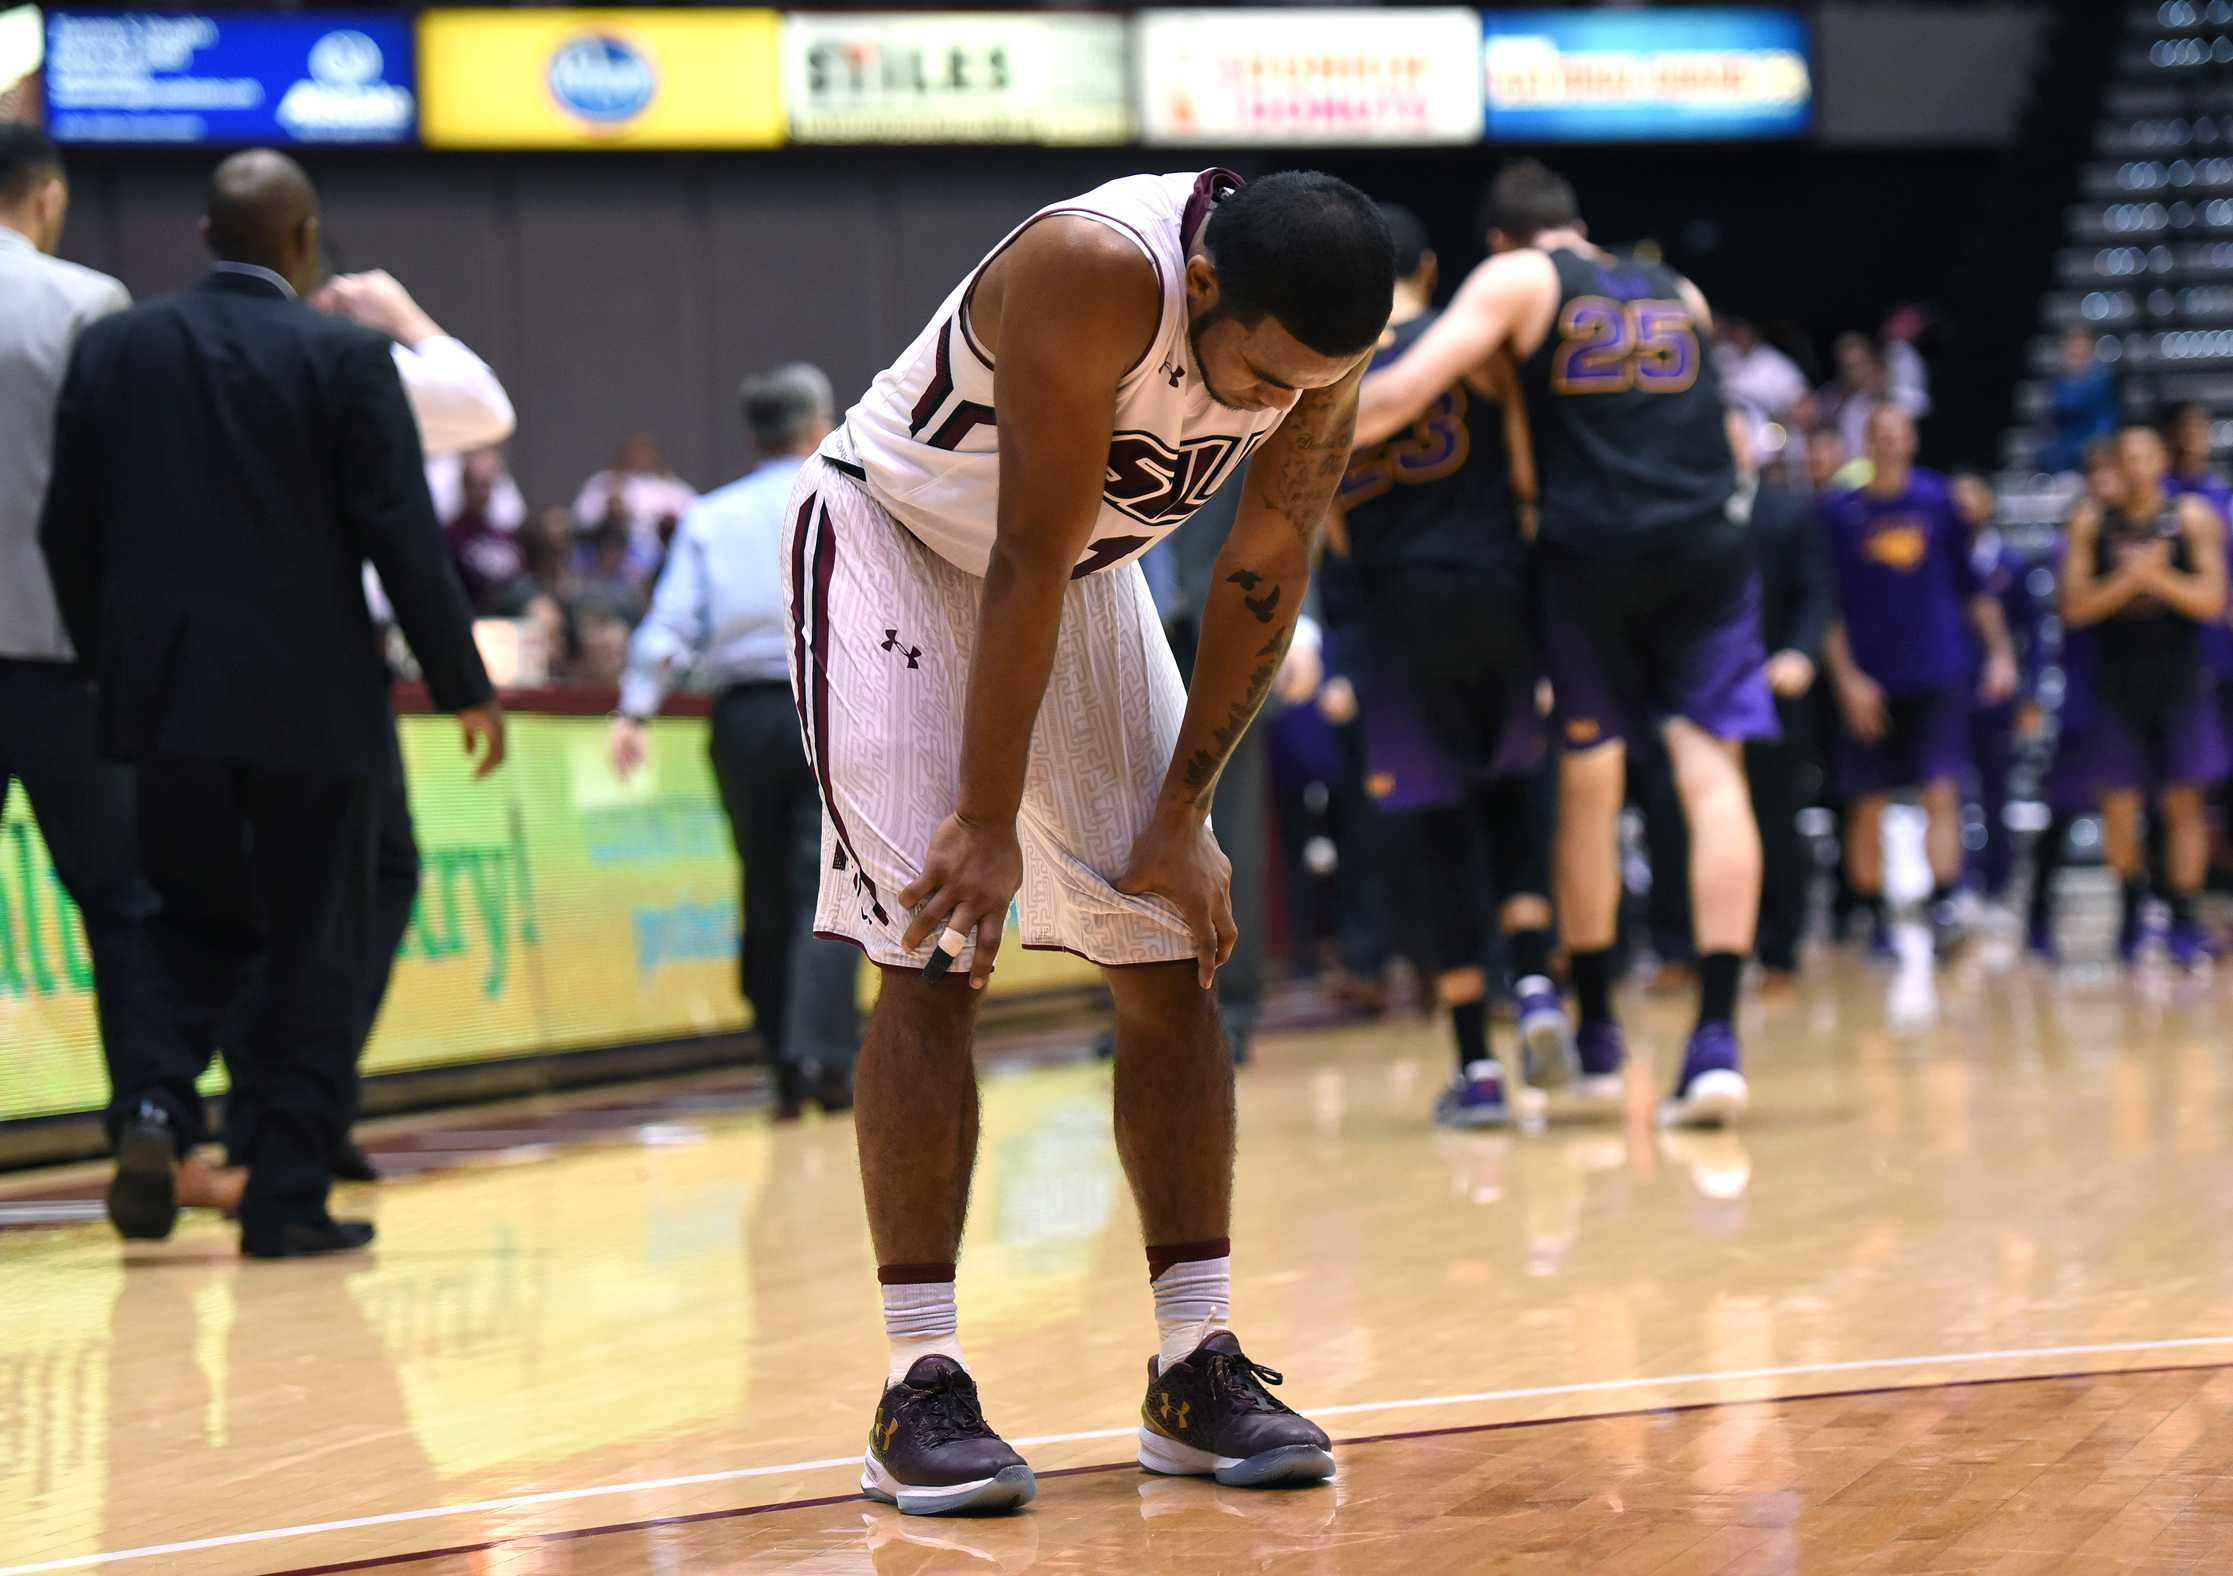 Senior guard Mike Rodriguez leans over after SIU's 58-57 loss against the Northern Iowa Panthers on Saturday, Jan. 21, 2017, at SIU Arena. (Luke Nozicka | @lukenozicka)